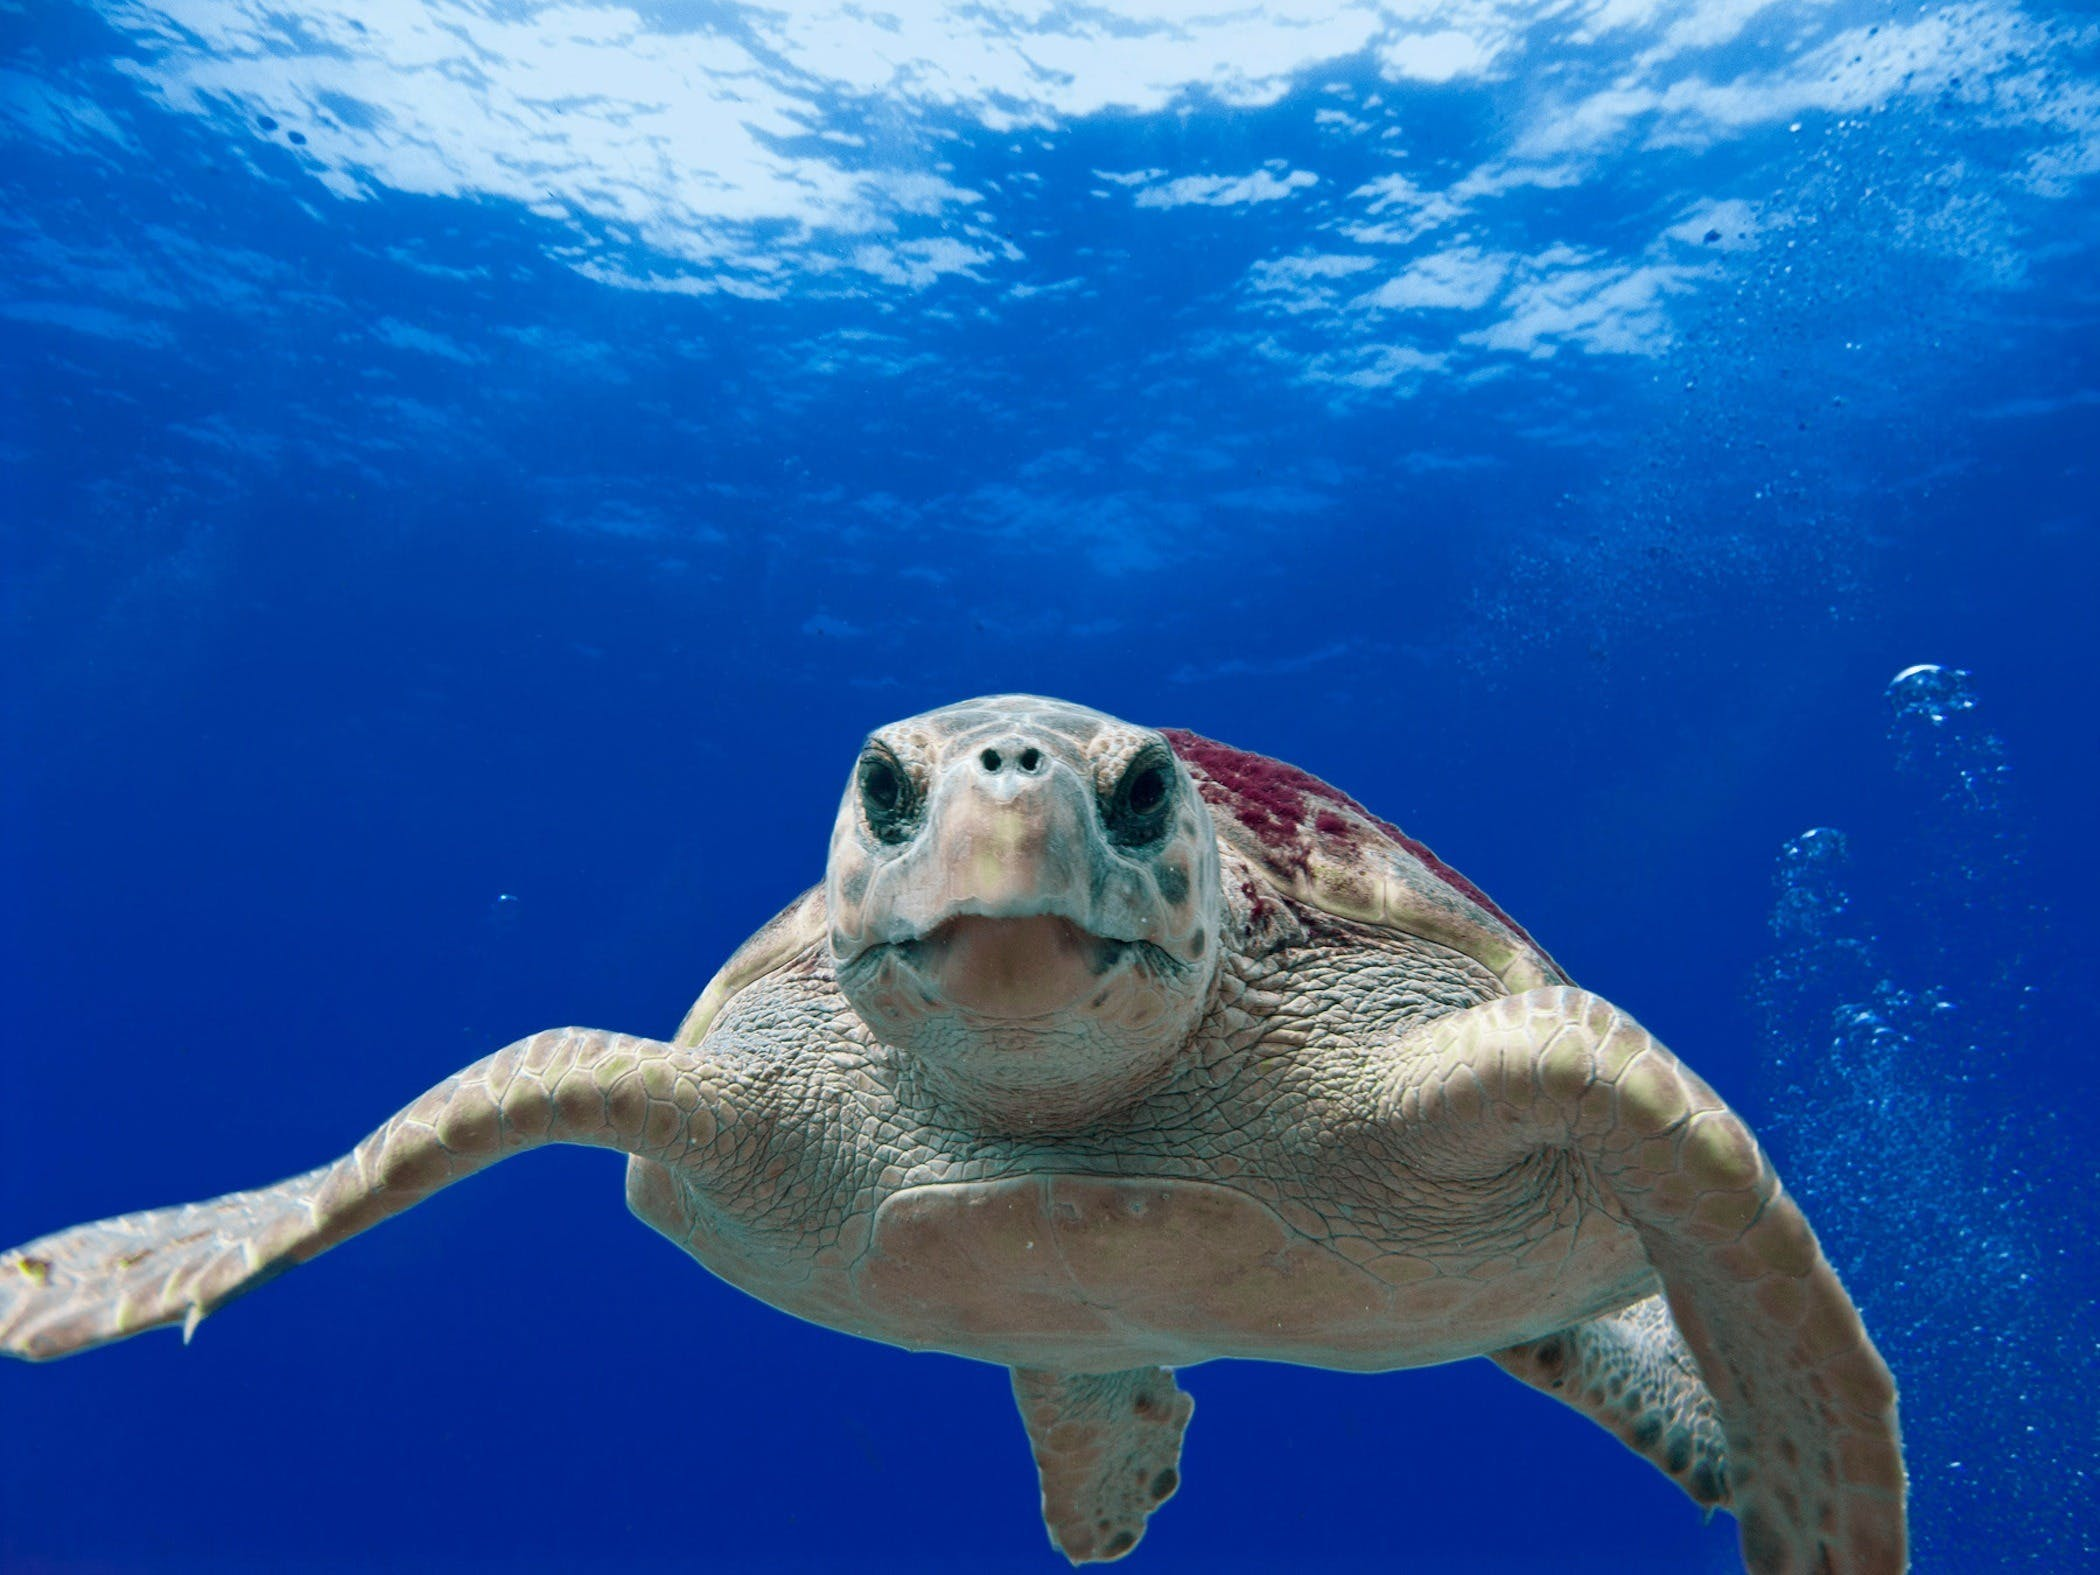 Gray and Green Turtle Swimming on Water